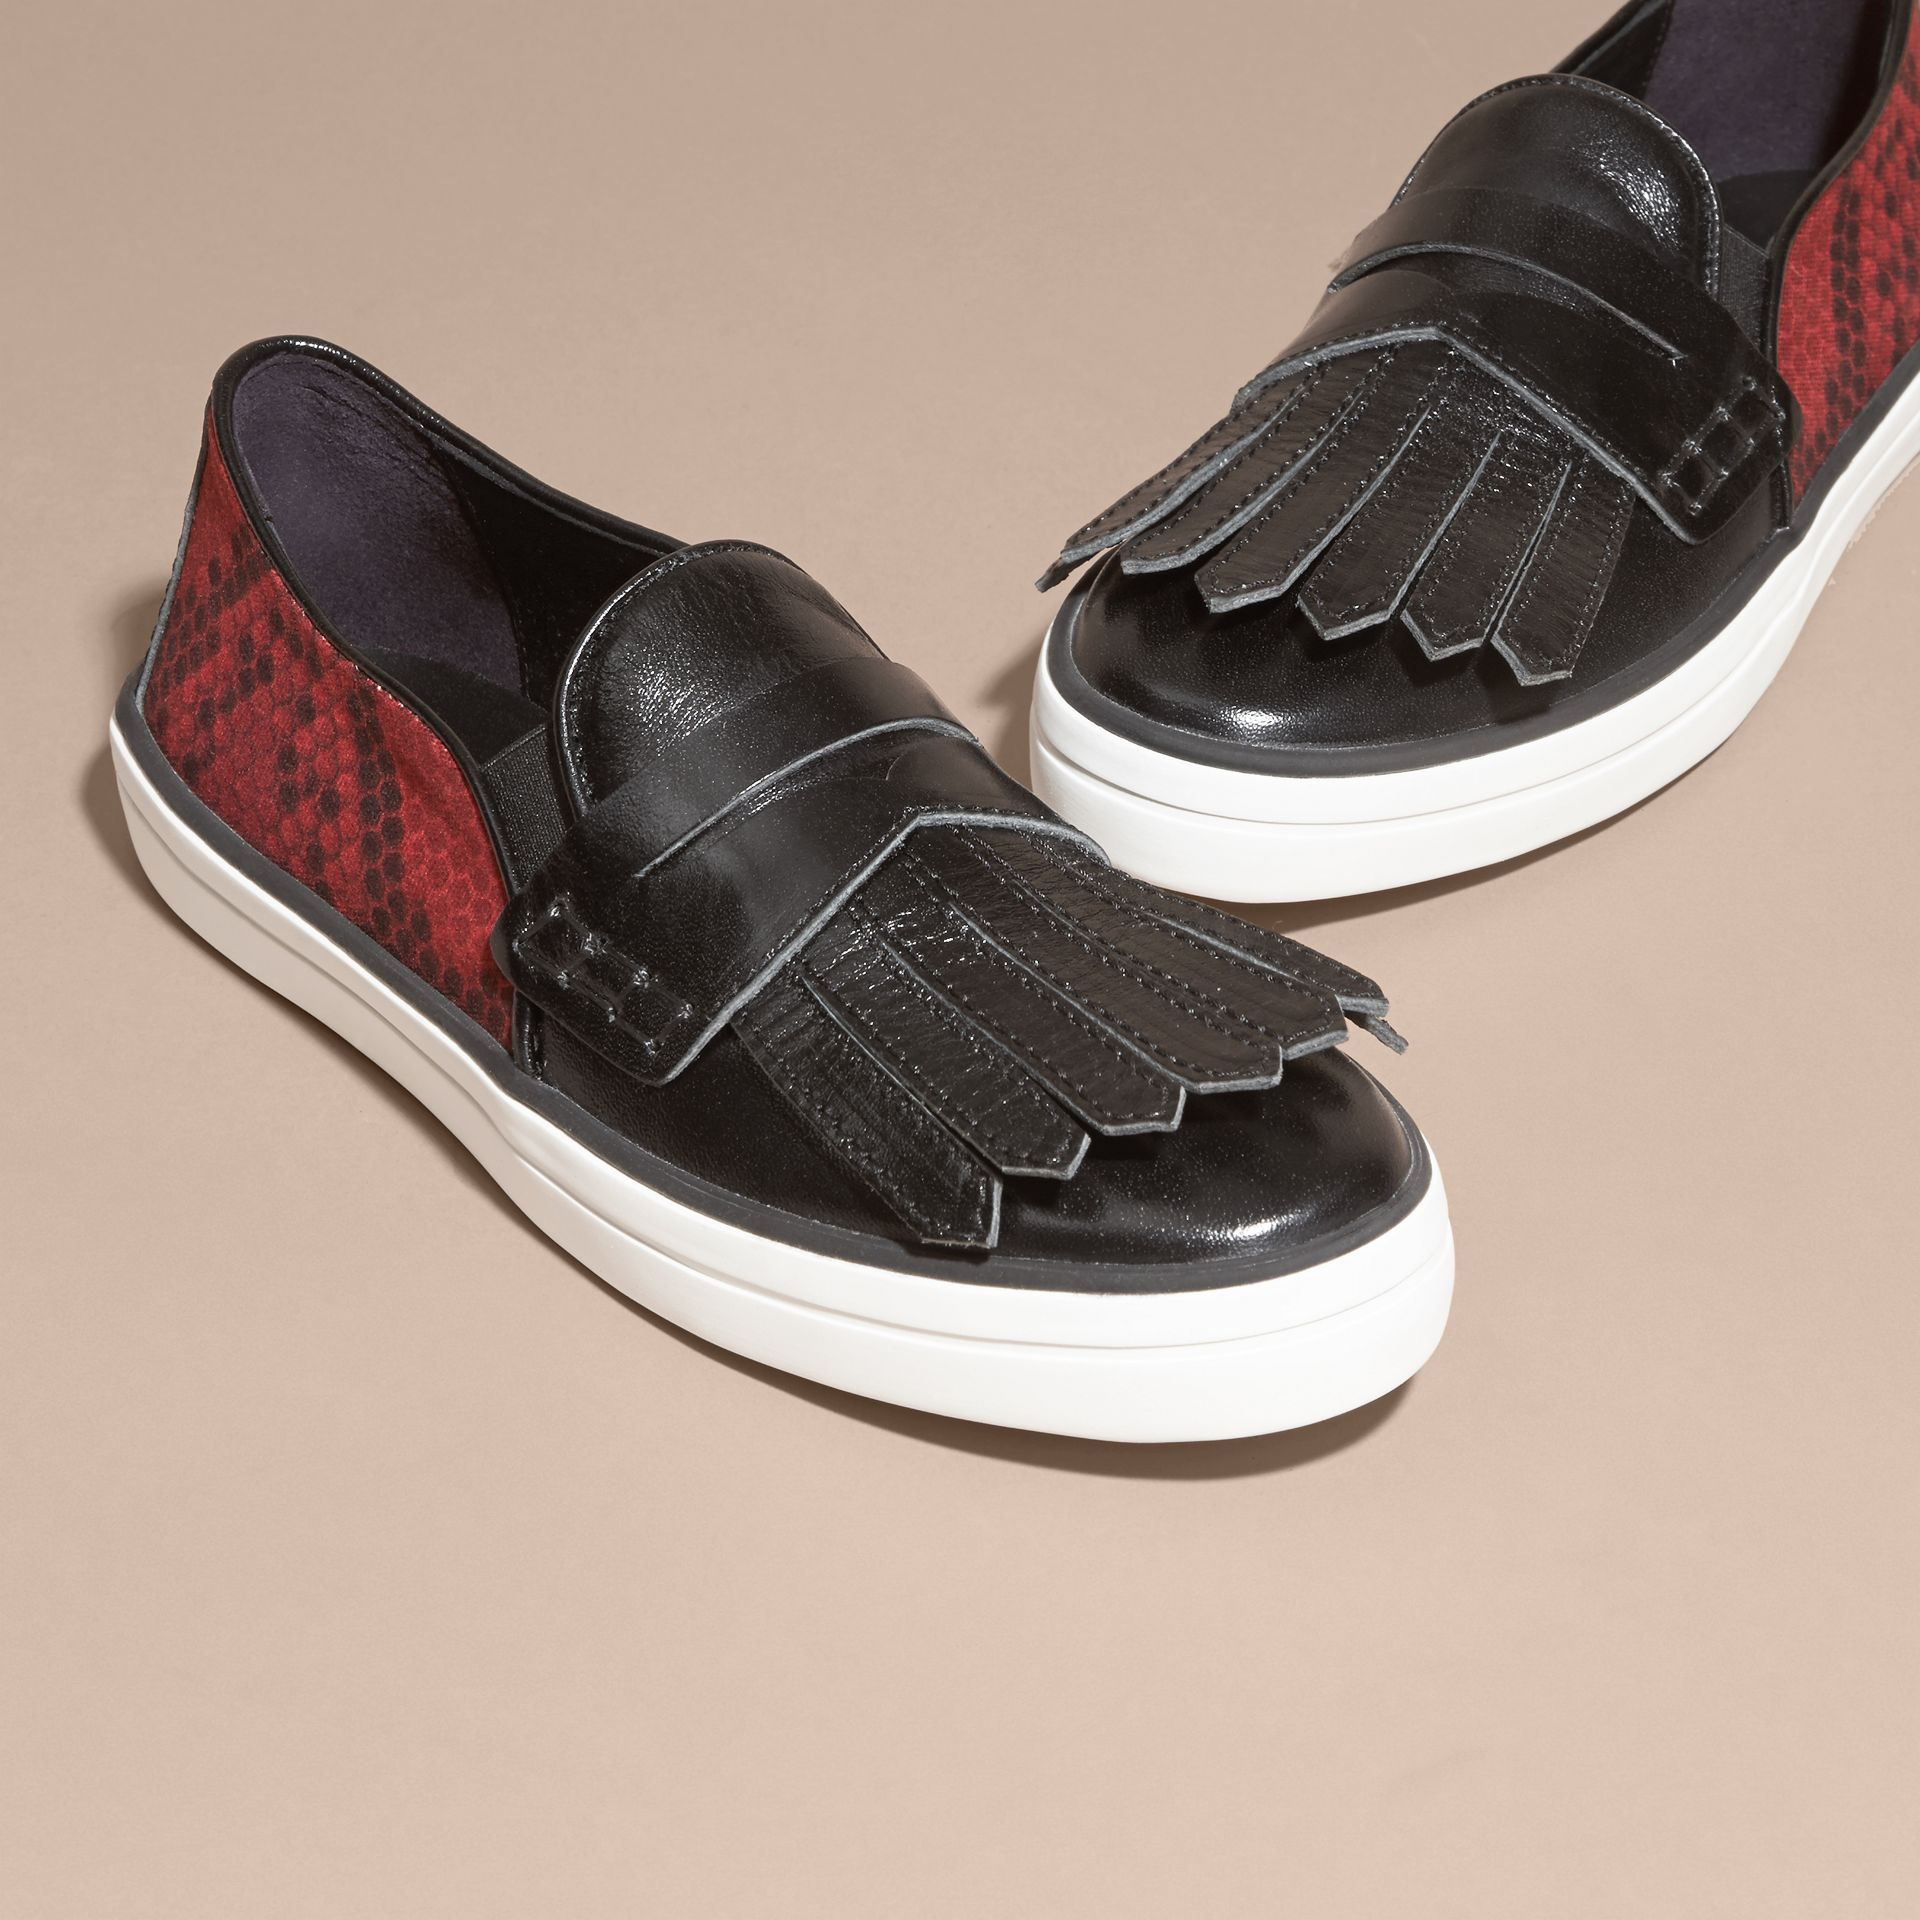 Black/windsor red Python Print Cotton and Leather Trainers Black/windsor Red - gallery image 3